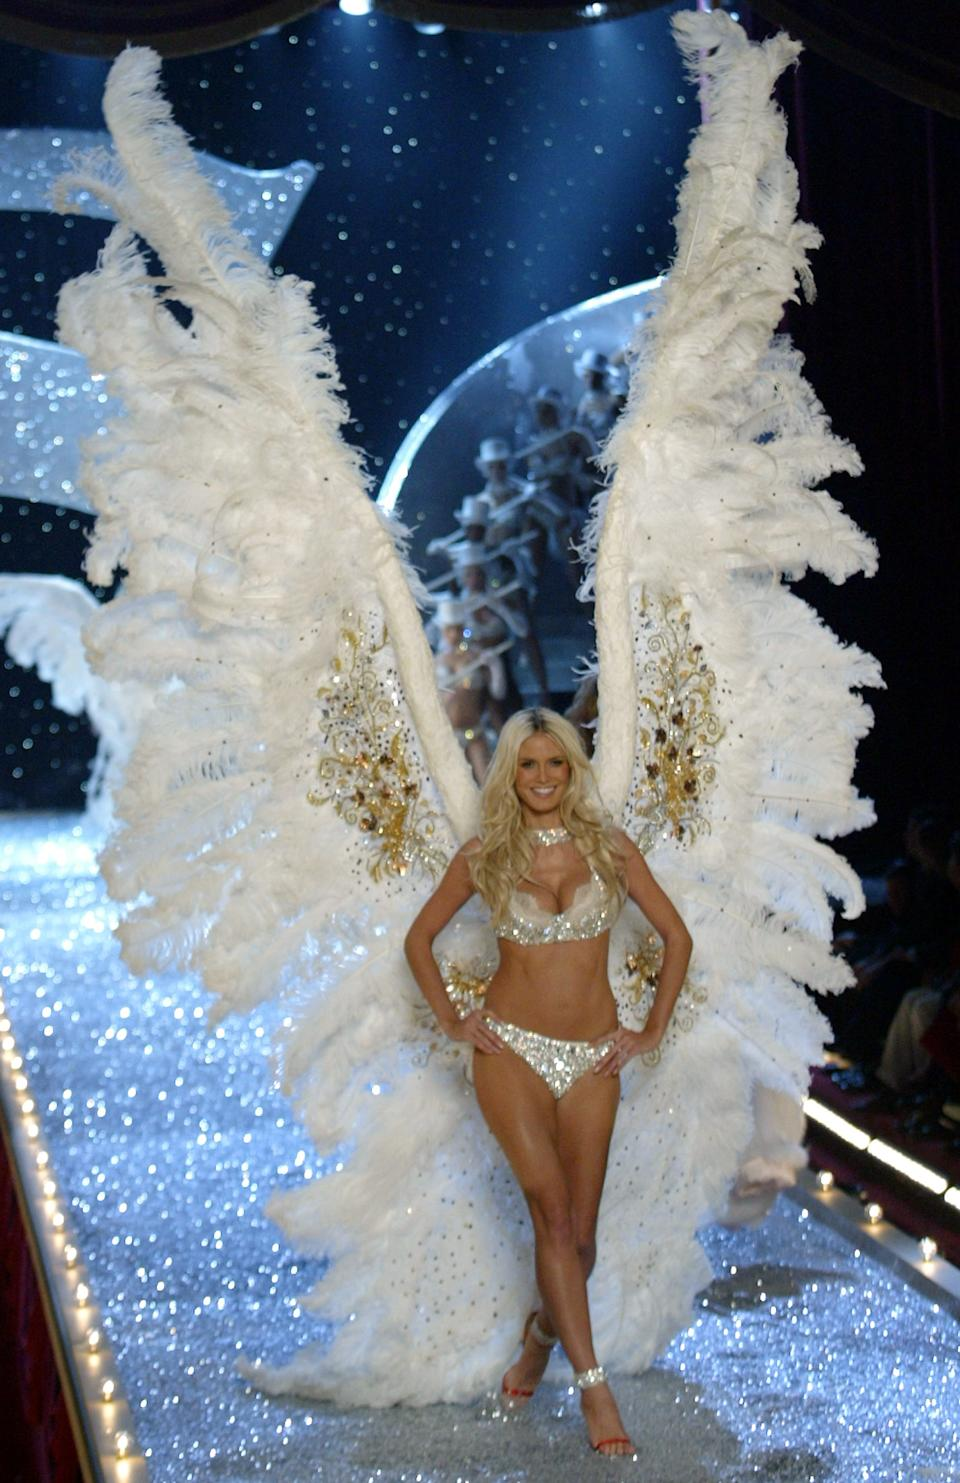 Supermodel Heidi Kluml walks the runway in giant white feather wings during the 2003 Victoria's Secret fashion show in New York, November 13, 2003. REUTERS/Mike Segar - EDITORIAL USE ONLY   PP03110058  MS/GAC